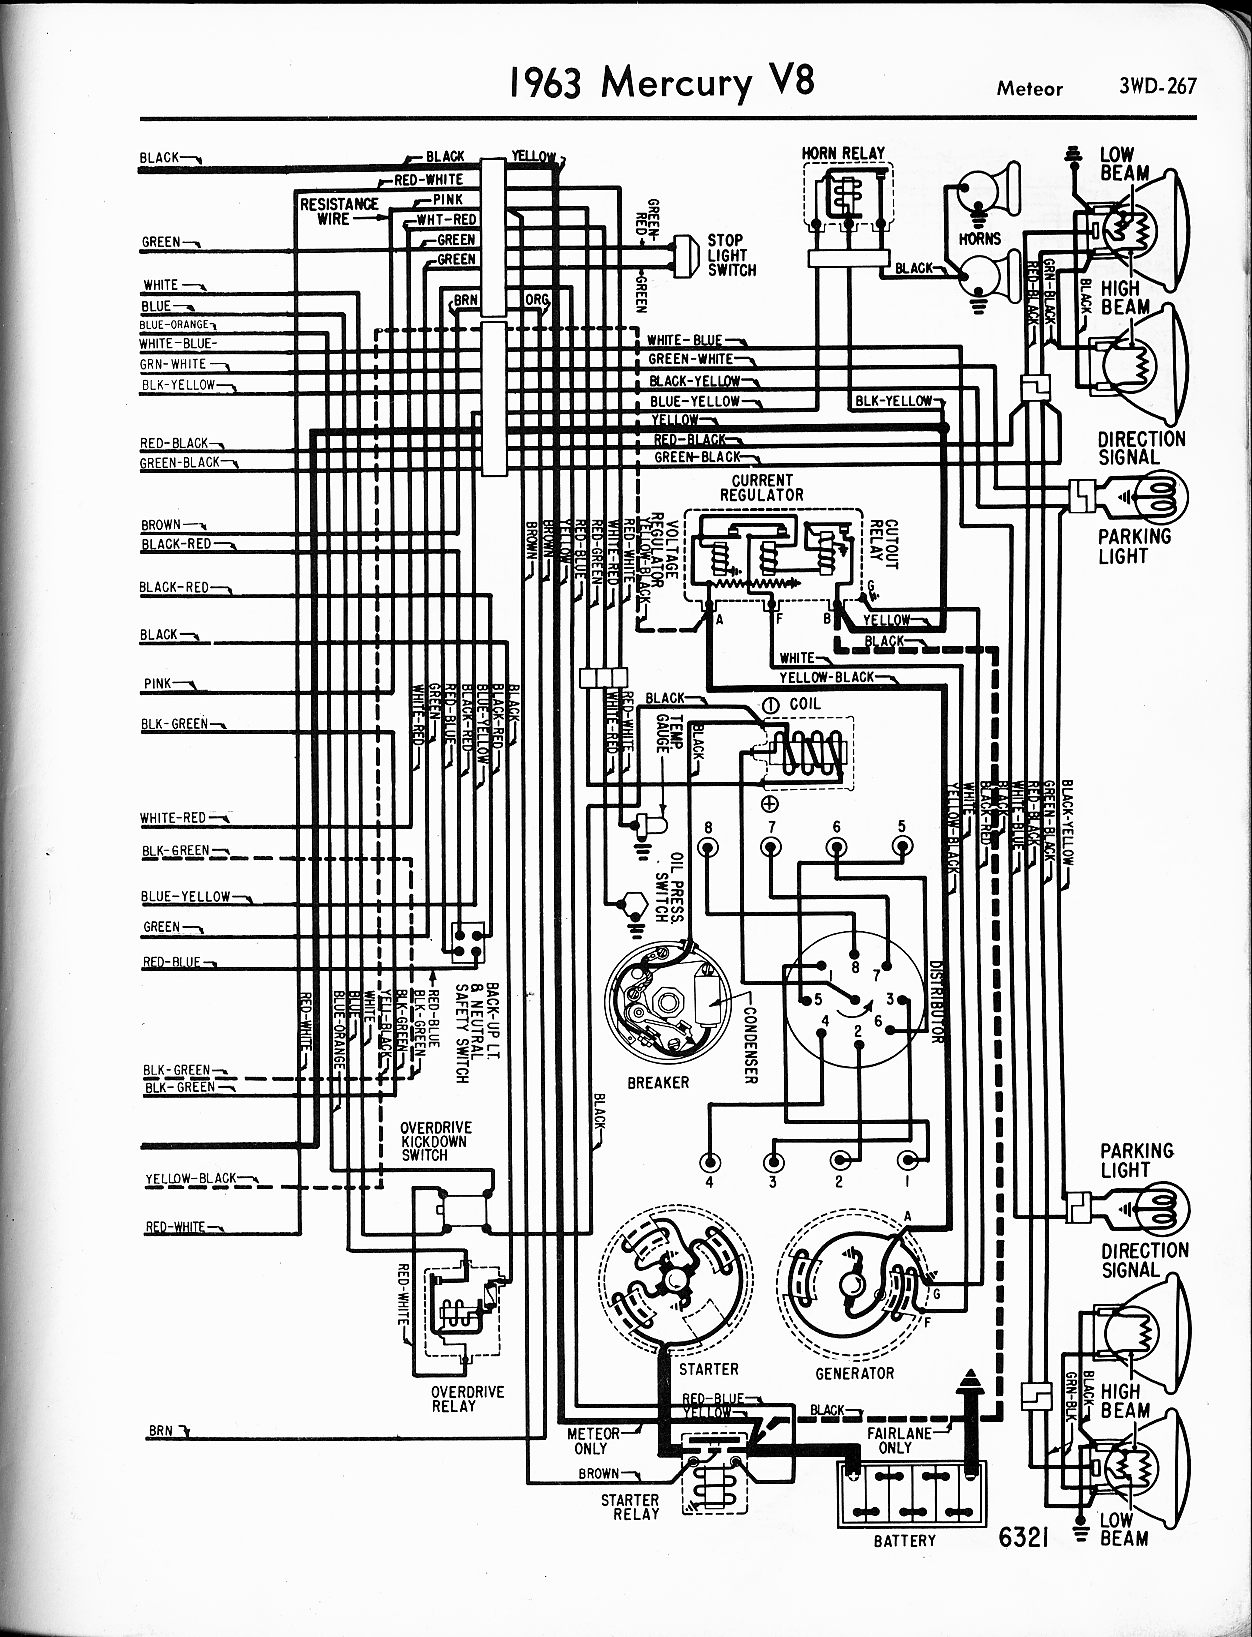 hight resolution of 1966 mercury comet wiring diagram wiring diagram third level rh 5 9 15 jacobwinterstein com mercruiser key switch wiring diagram mercruiser 5 7 wiring